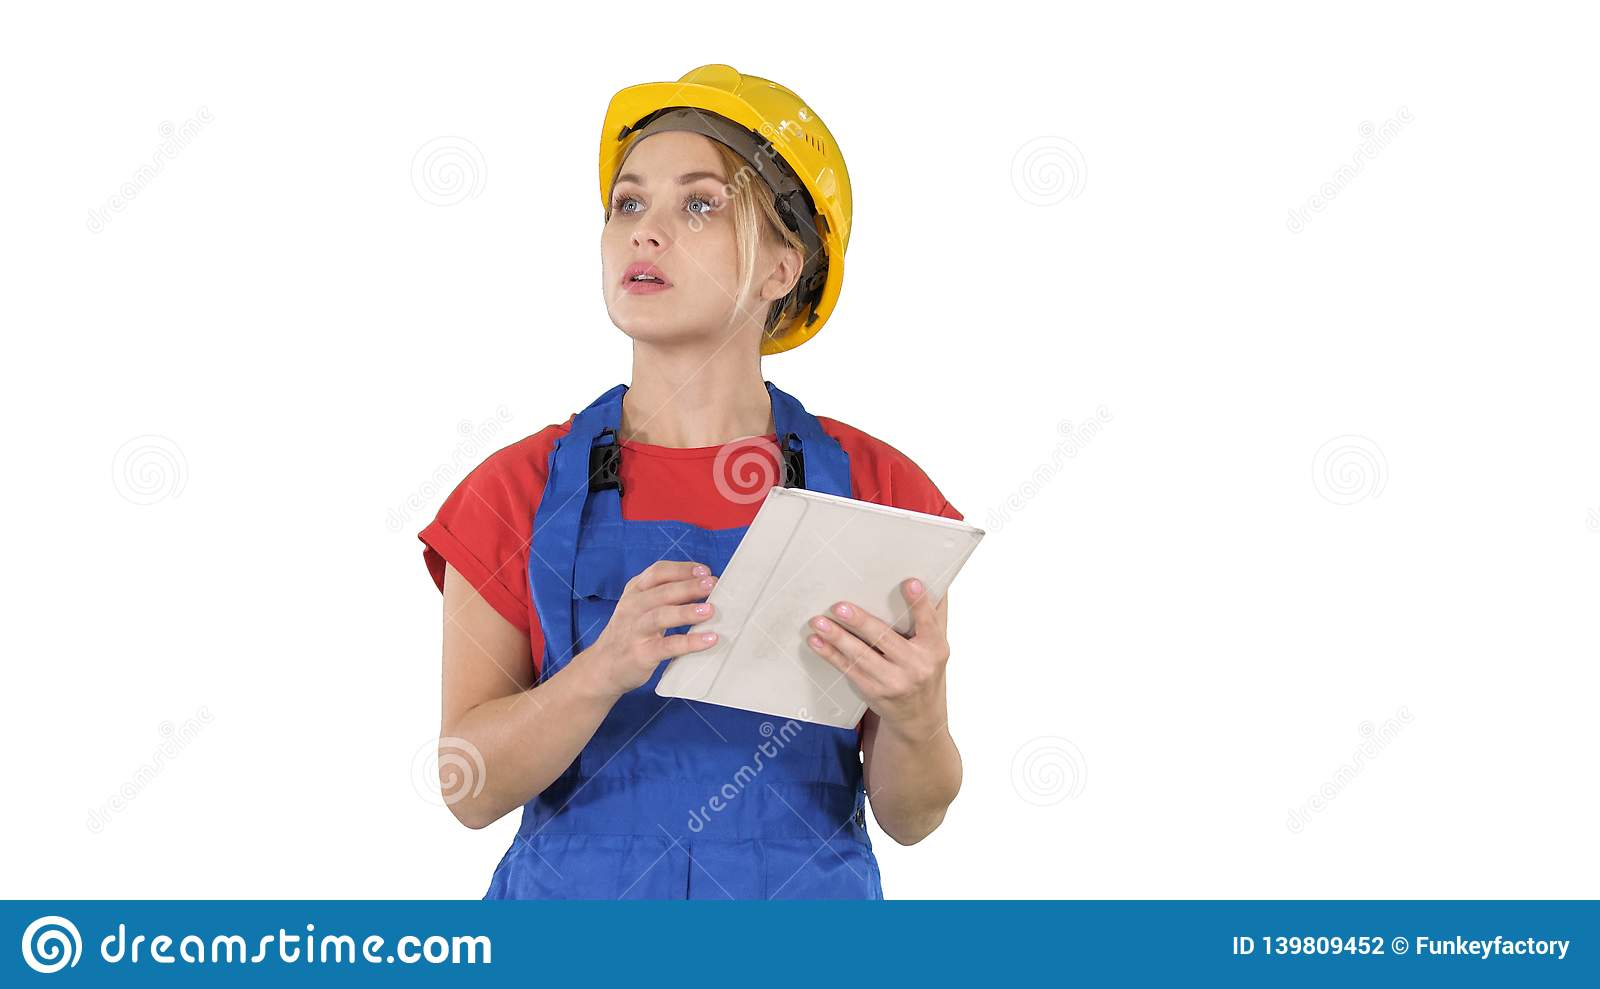 Woman engineer checking building plan on touchpad and looking at objects, buildings around her on white background.